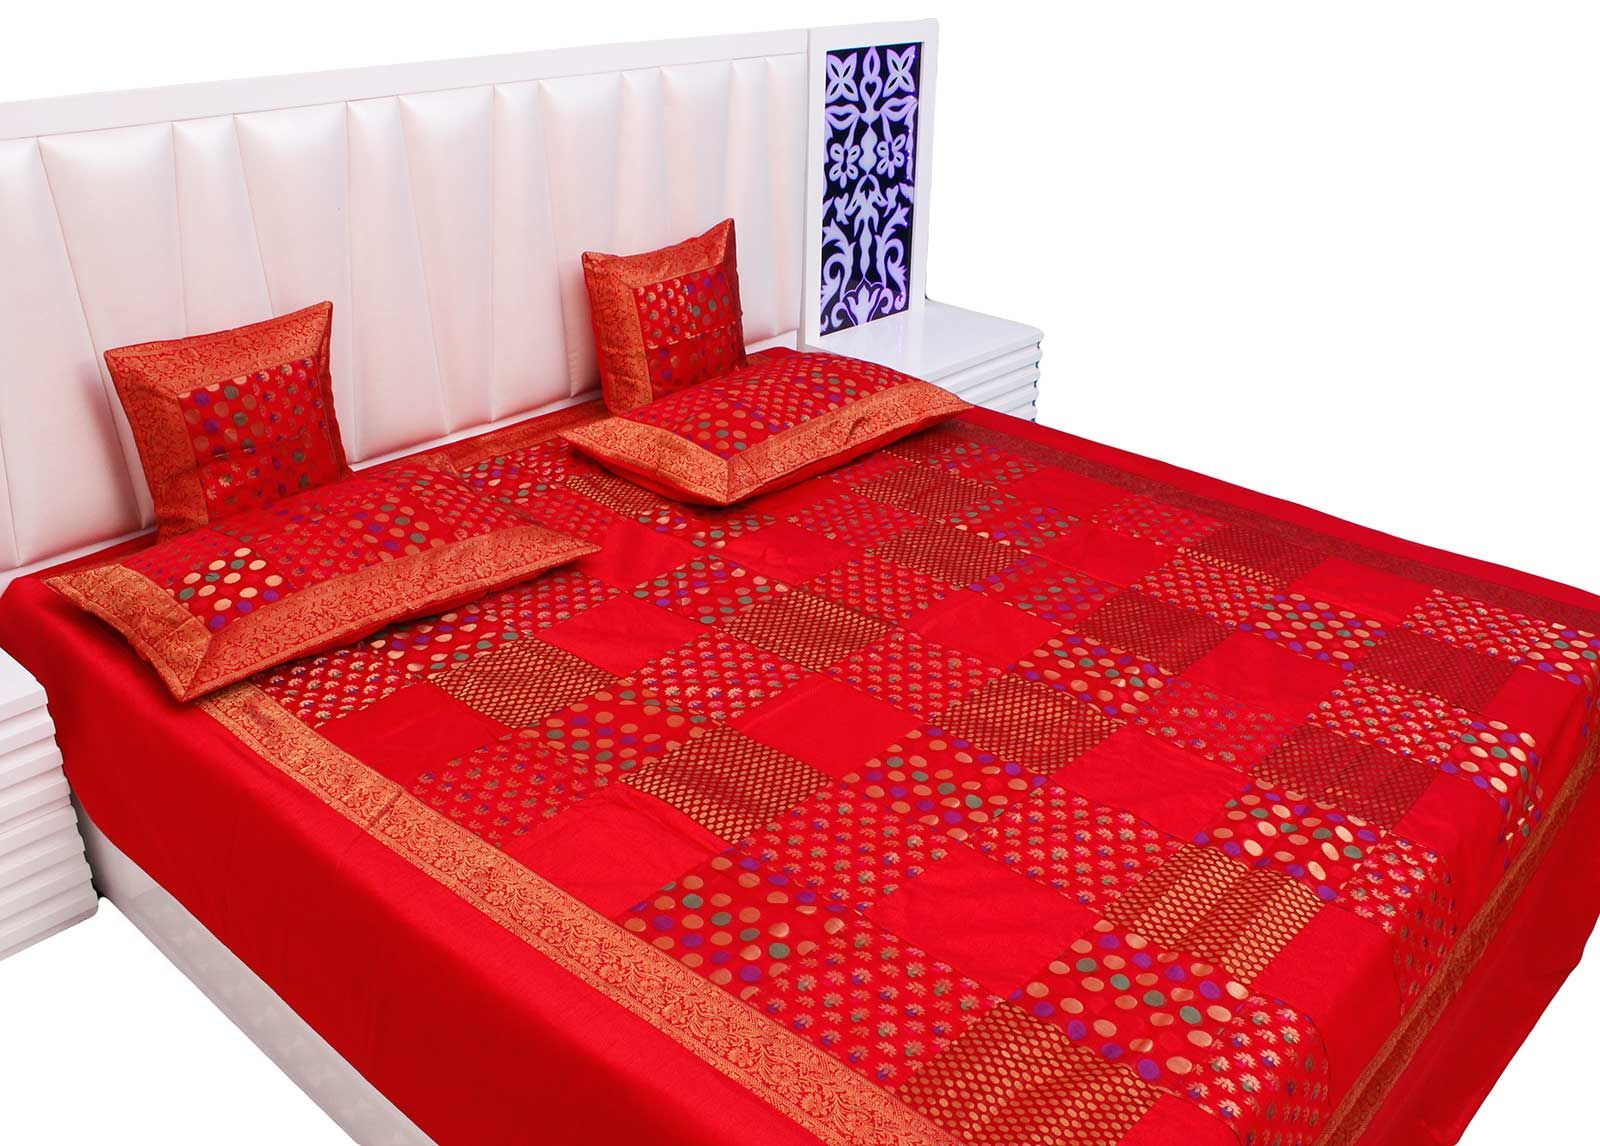 Bed sheets designs patchwork - Rajasthani Brocade Patch Work Design Silk Double Bed Cover Cushion Set